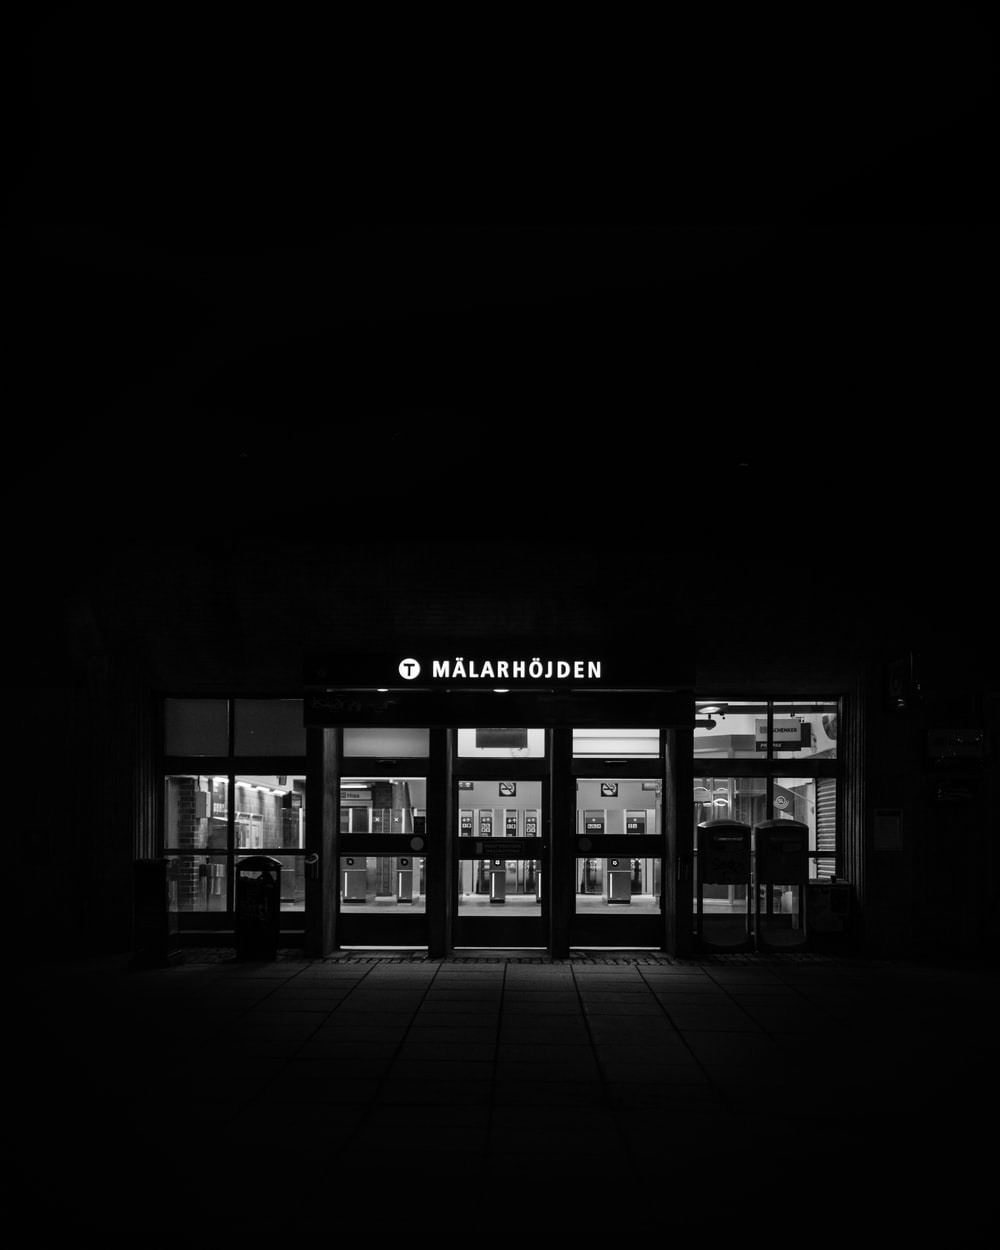 Malarhojden store at night time